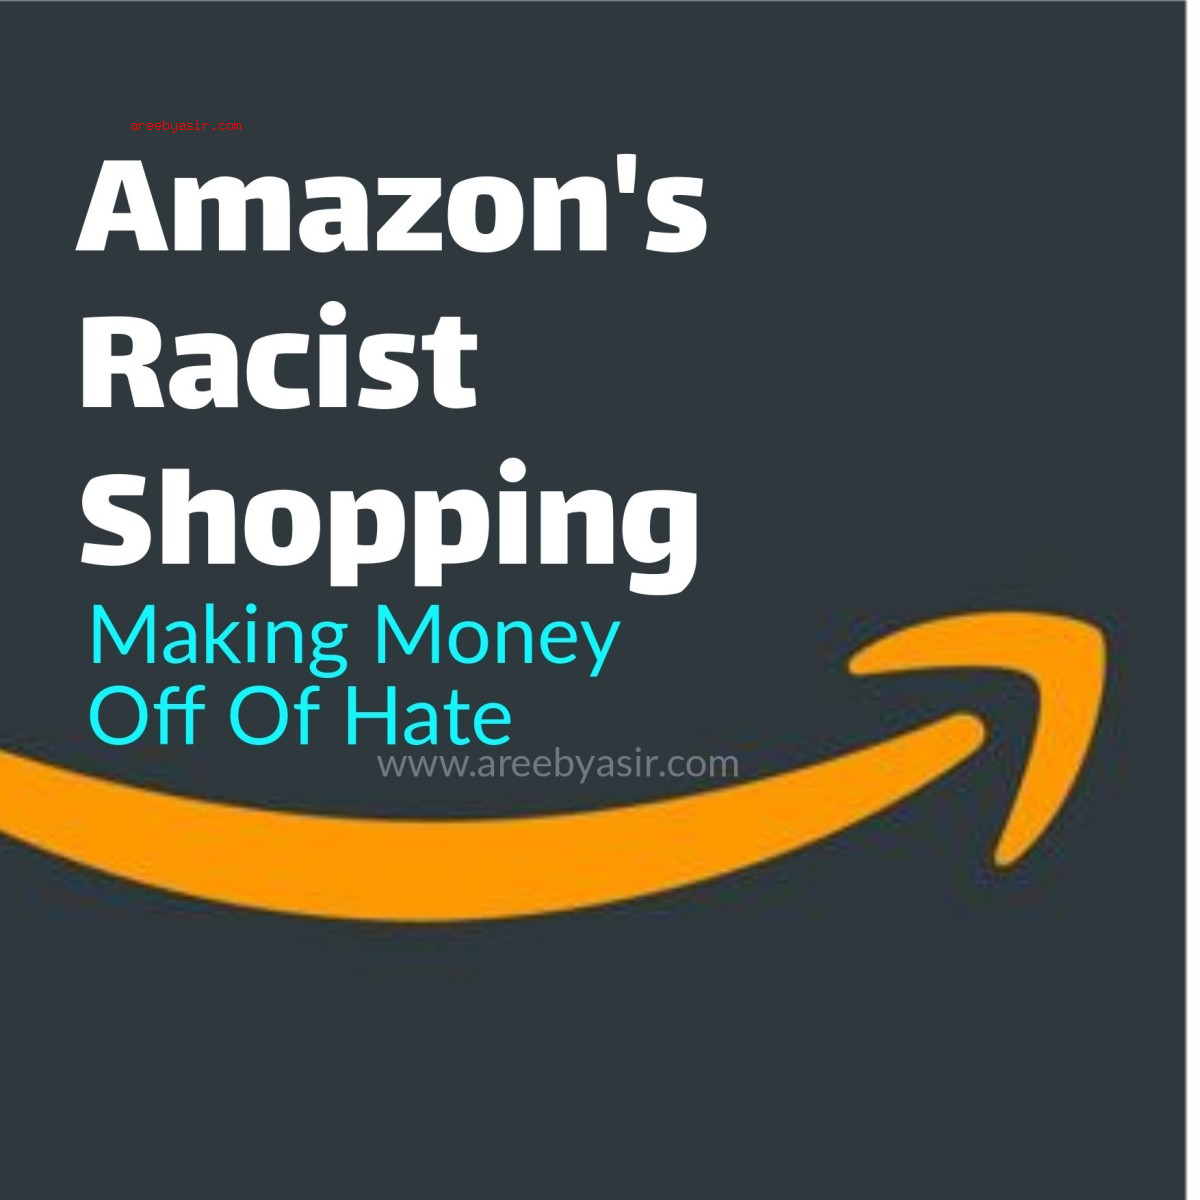 Amazon's Racist Shop